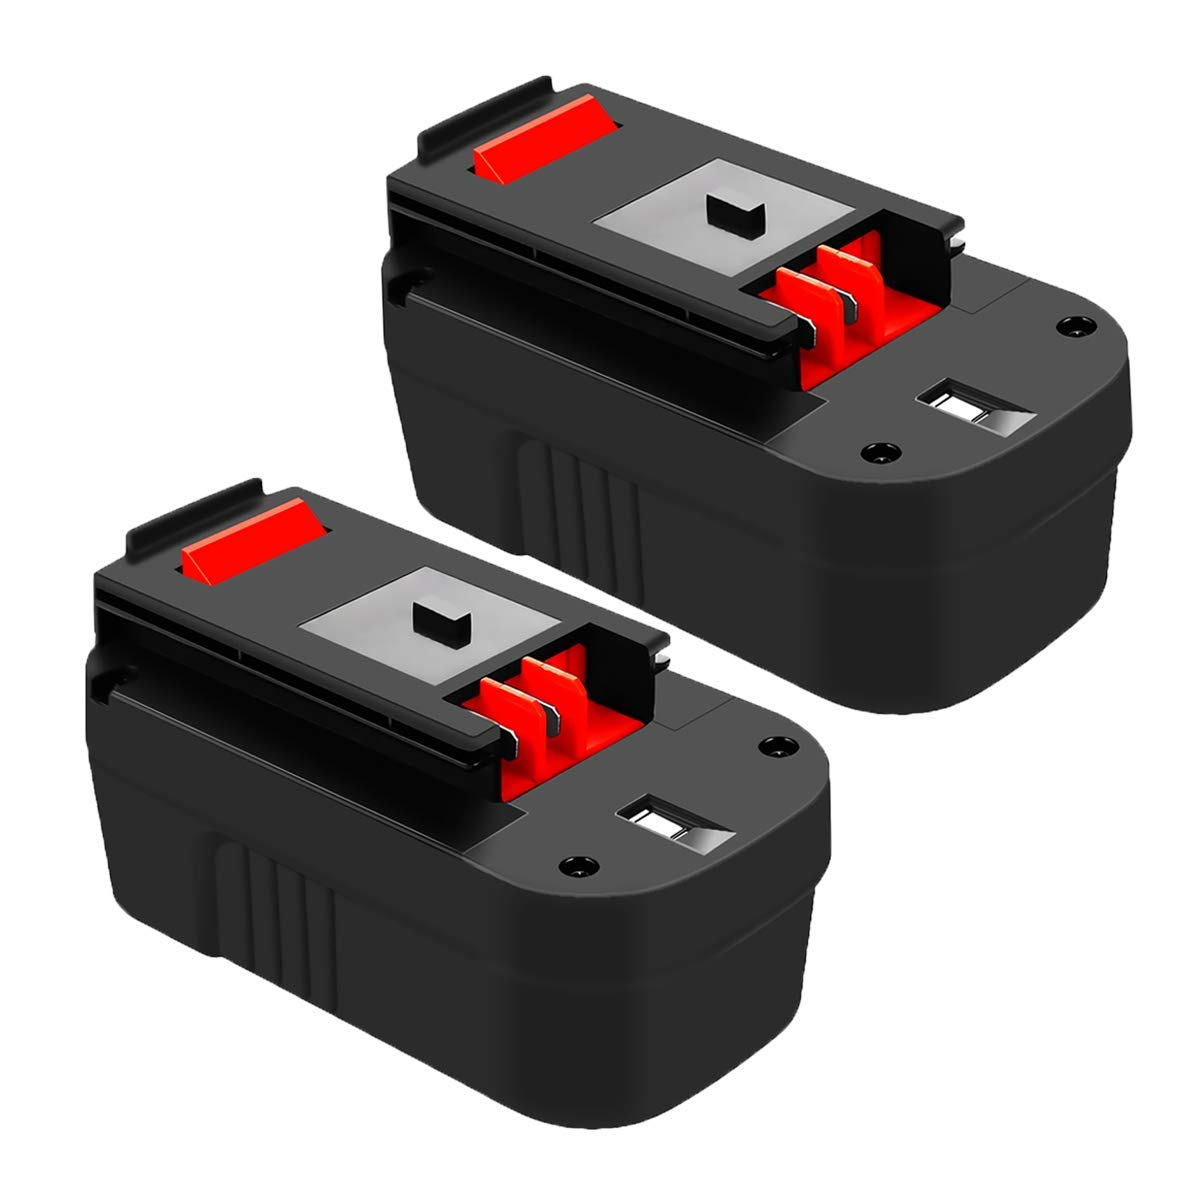 HPB18 Ni-Mh 18V Battery Replace for Black and Decker 18 Volt Battery 3.0Ah Firestorm 244760-00 HPB18-OPE A1718 FS18FL FSB18 Cordless Power Tools (2 Packs)